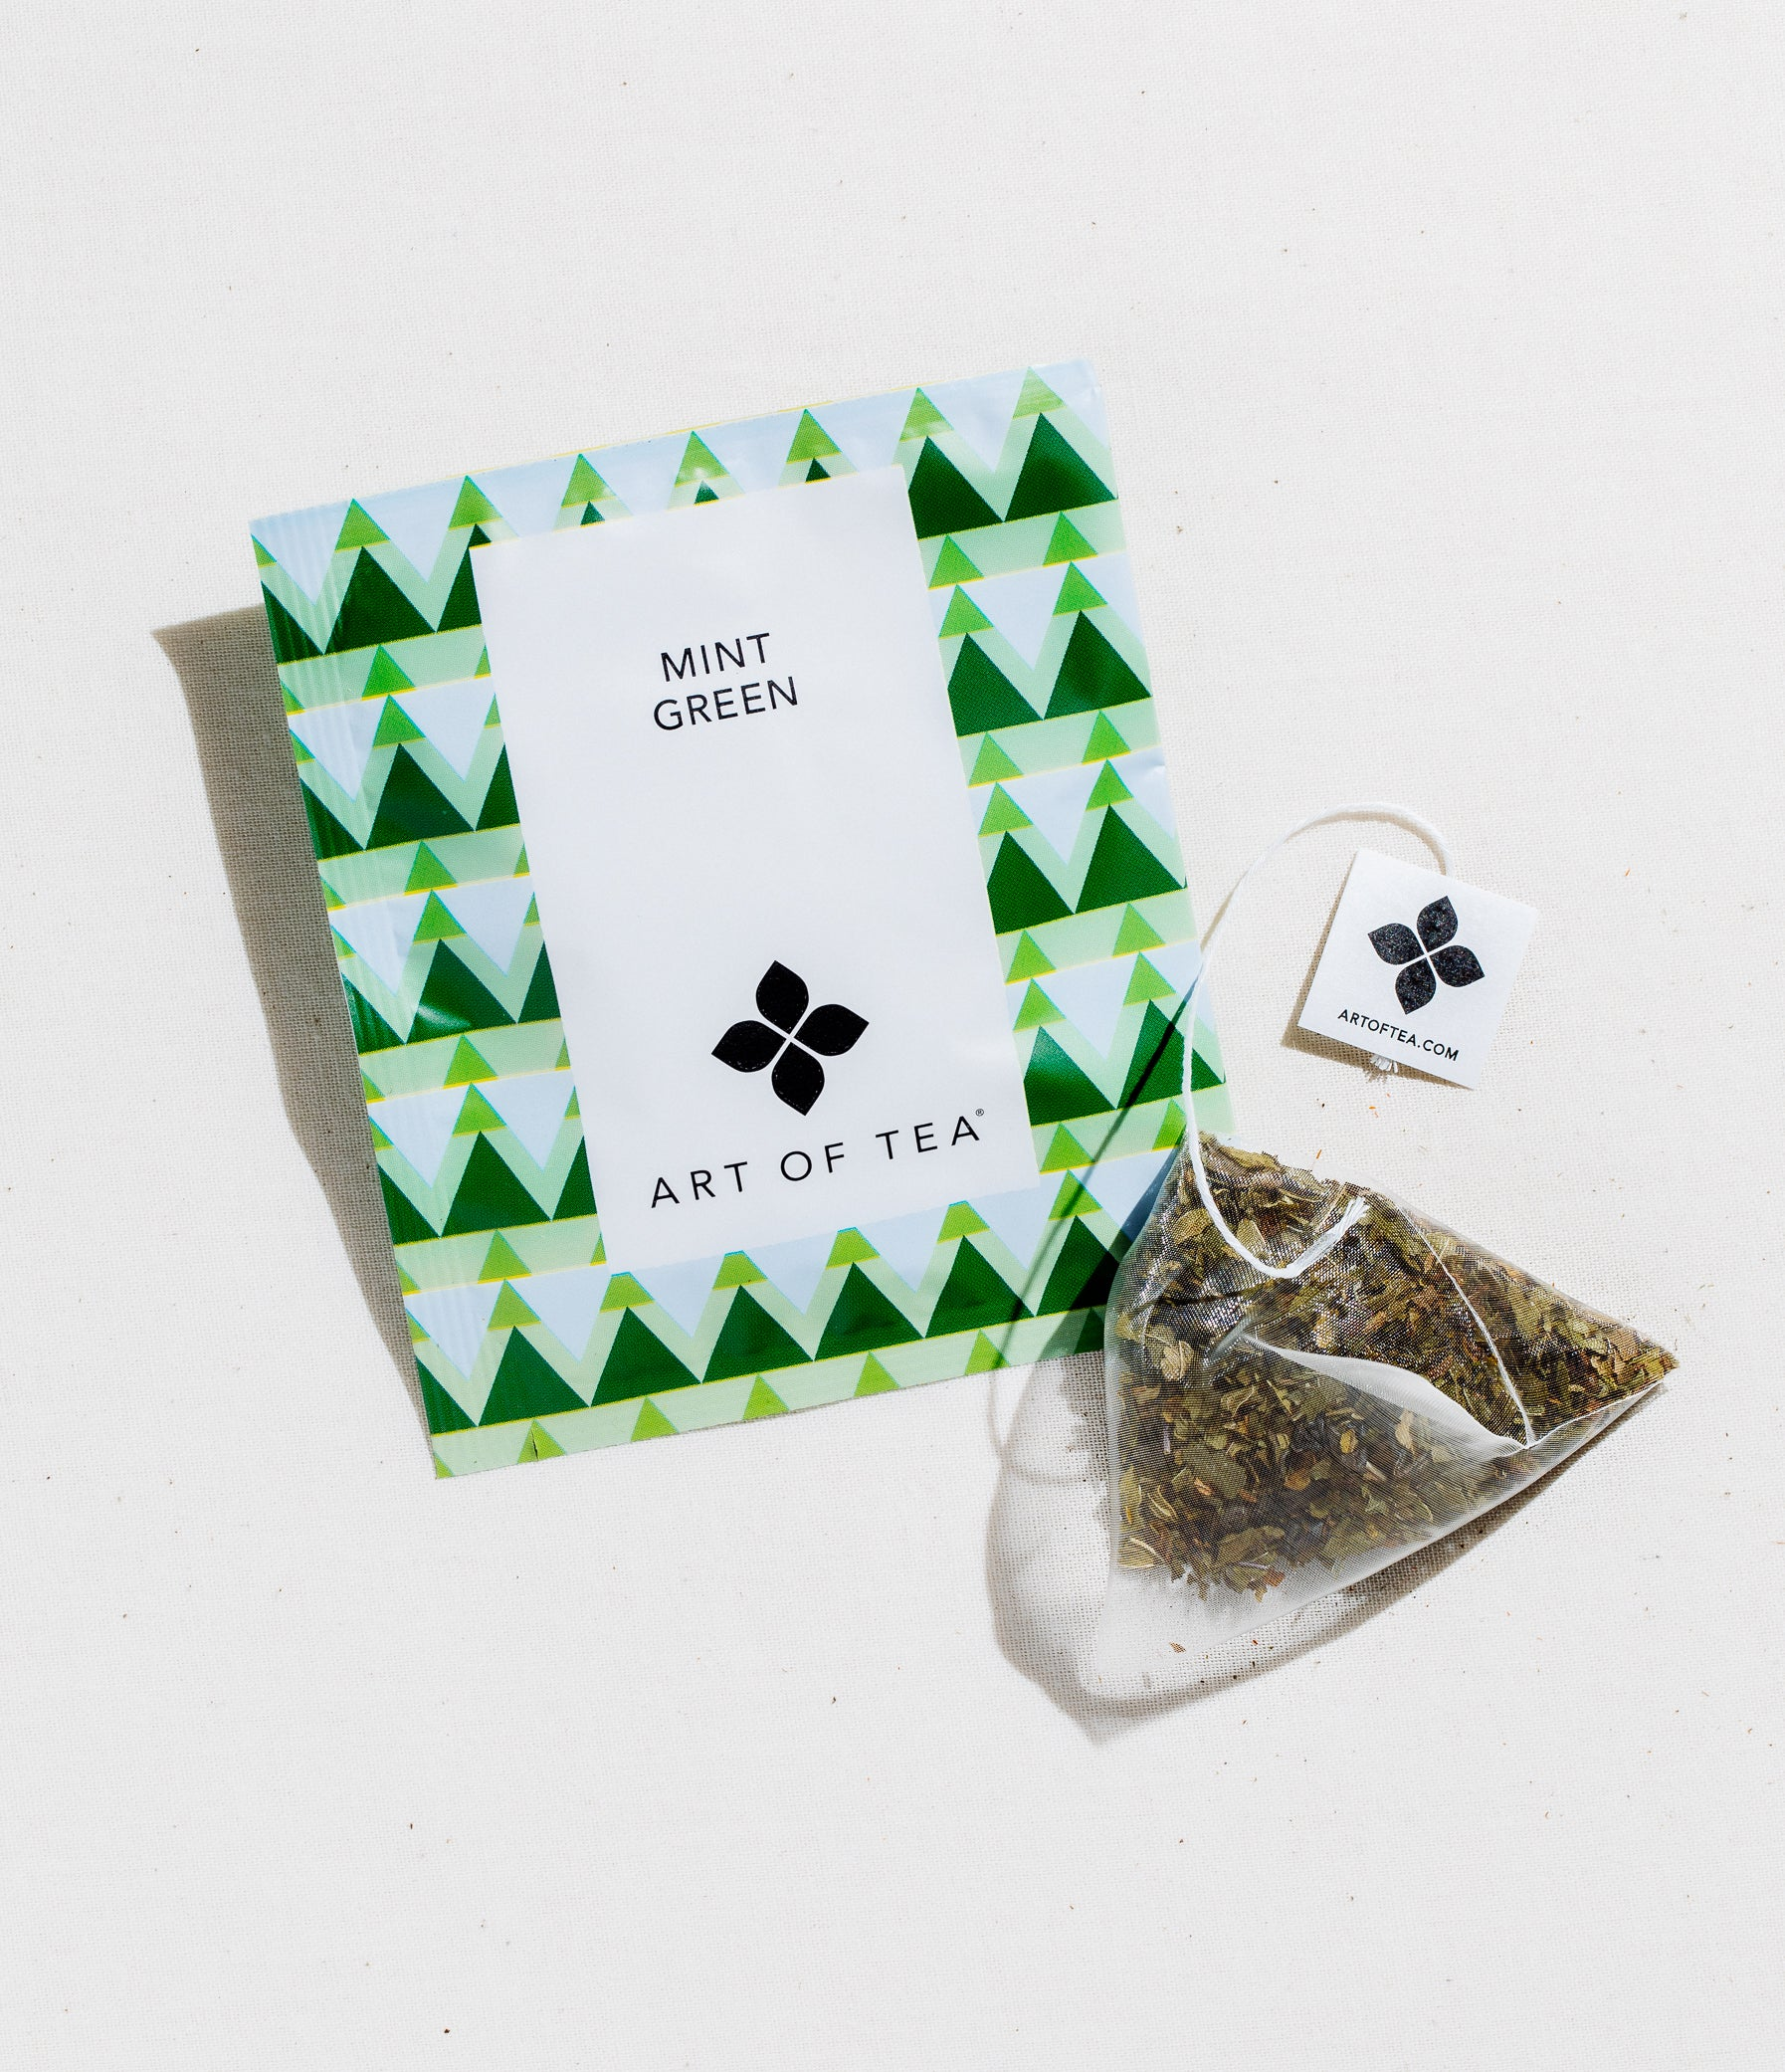 Mint Green Tea Eco Teabag Sachets Packaged Teas 50 Teabags by Art of Tea